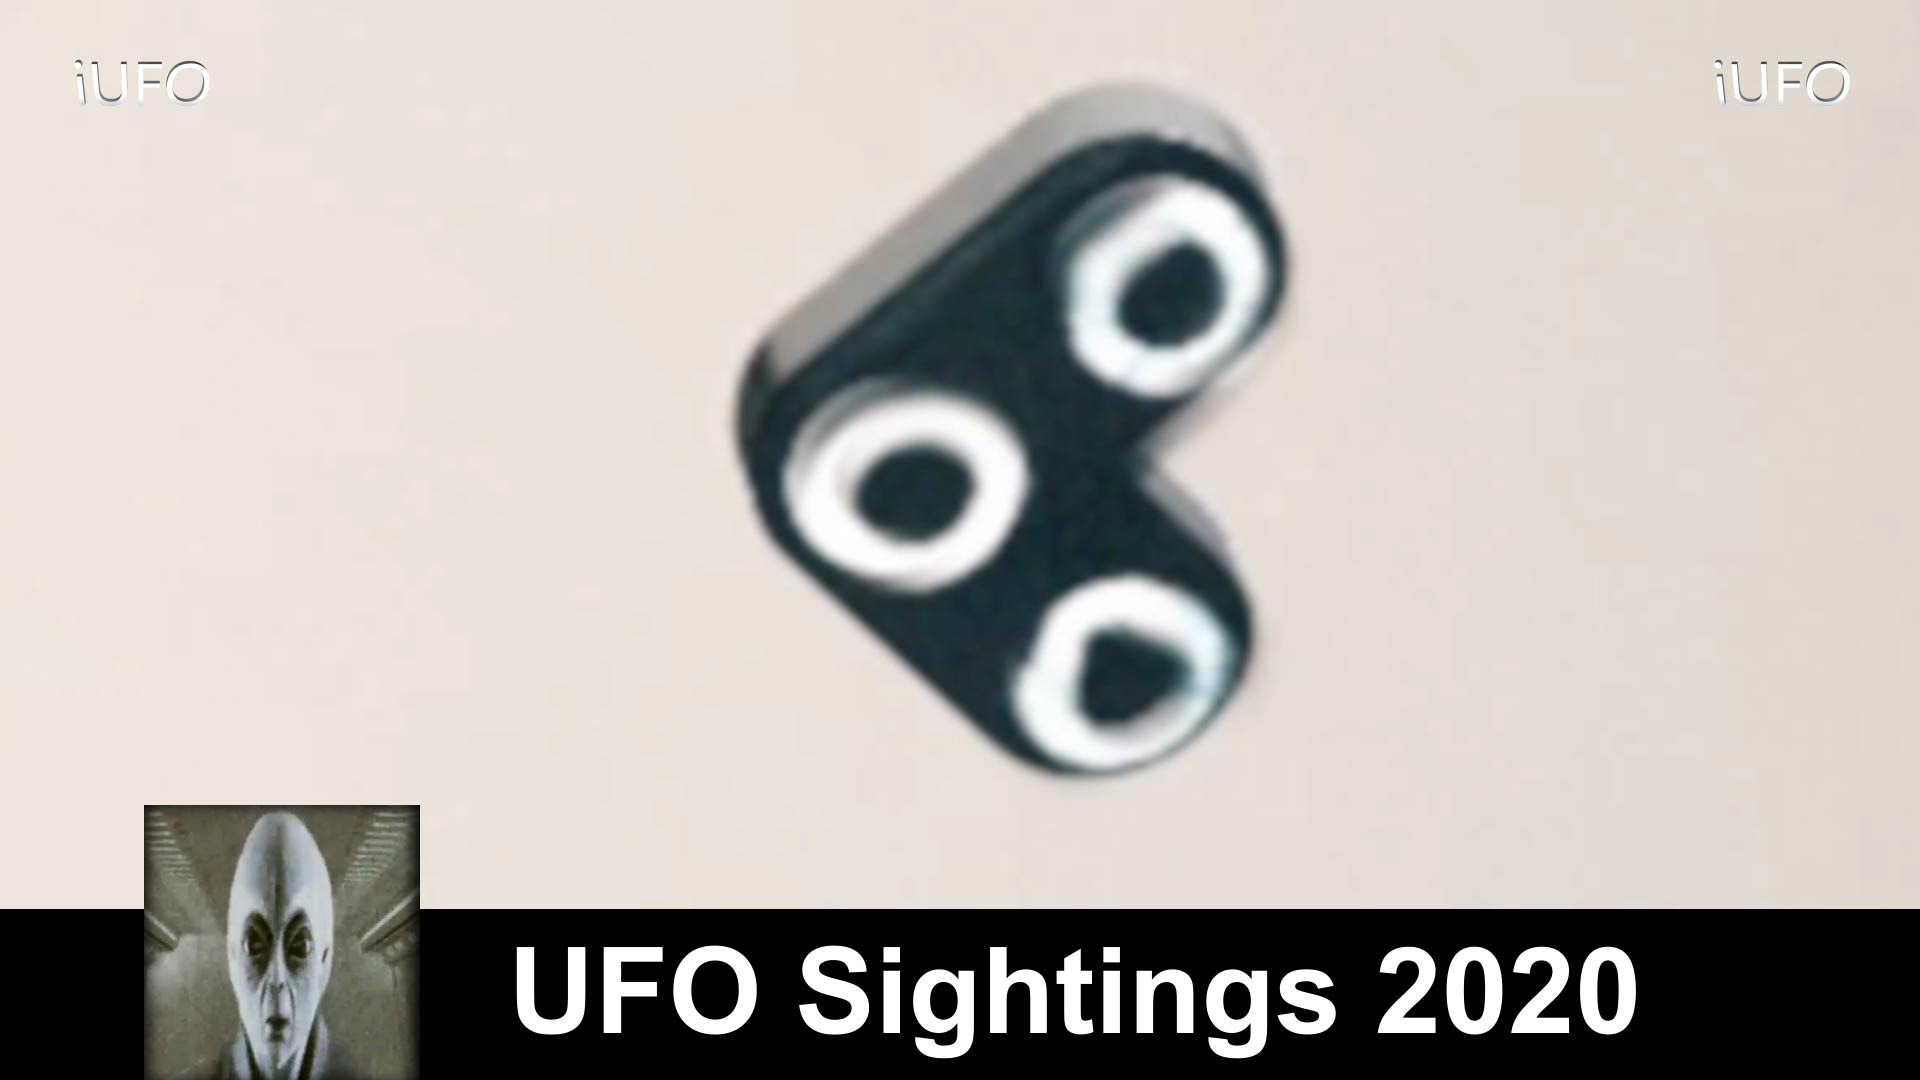 UFO Sightings 2020 Huge Object Spotted On A Farm